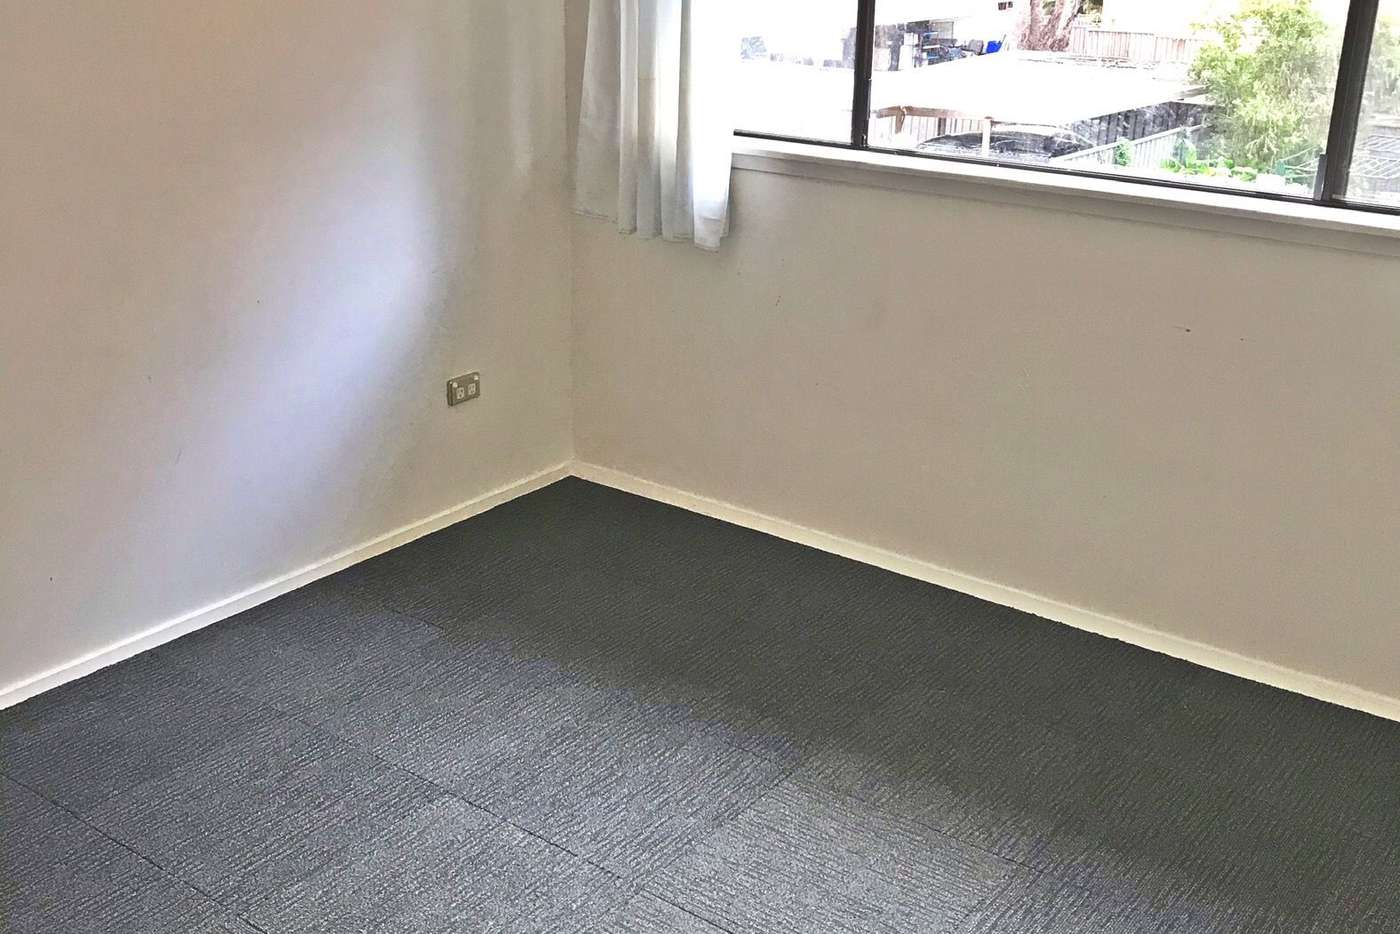 Seventh view of Homely unit listing, 8/29 First St, Kingswood NSW 2747